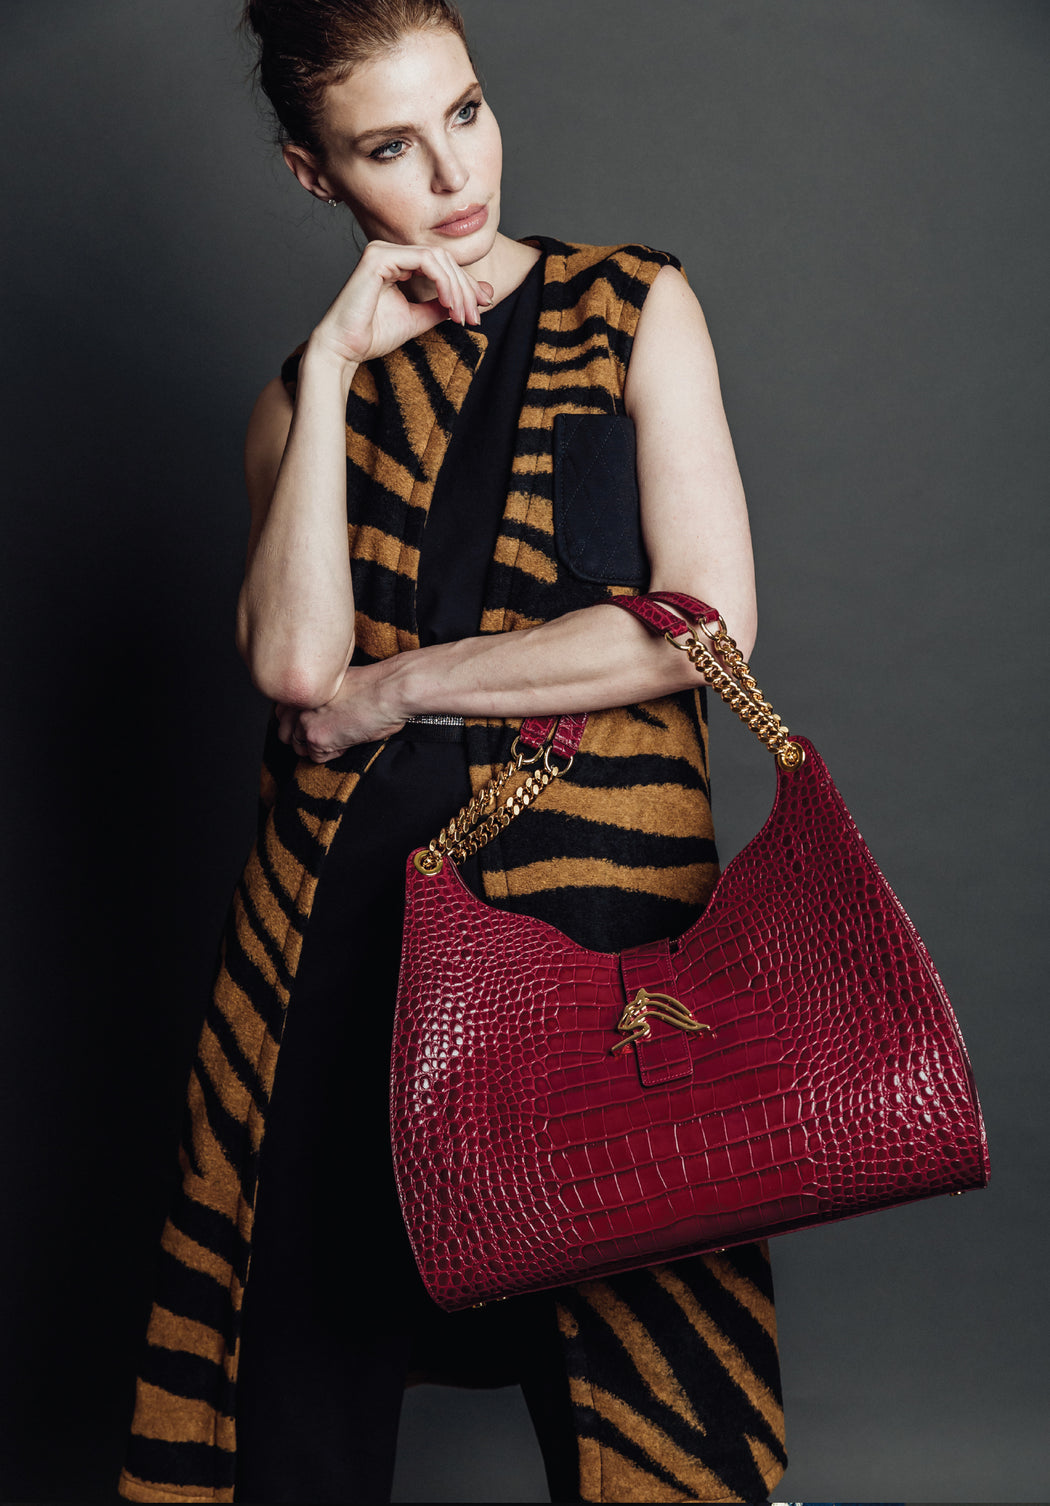 Woman with designer hobo bag in croc-embossed leather in bordeaux color